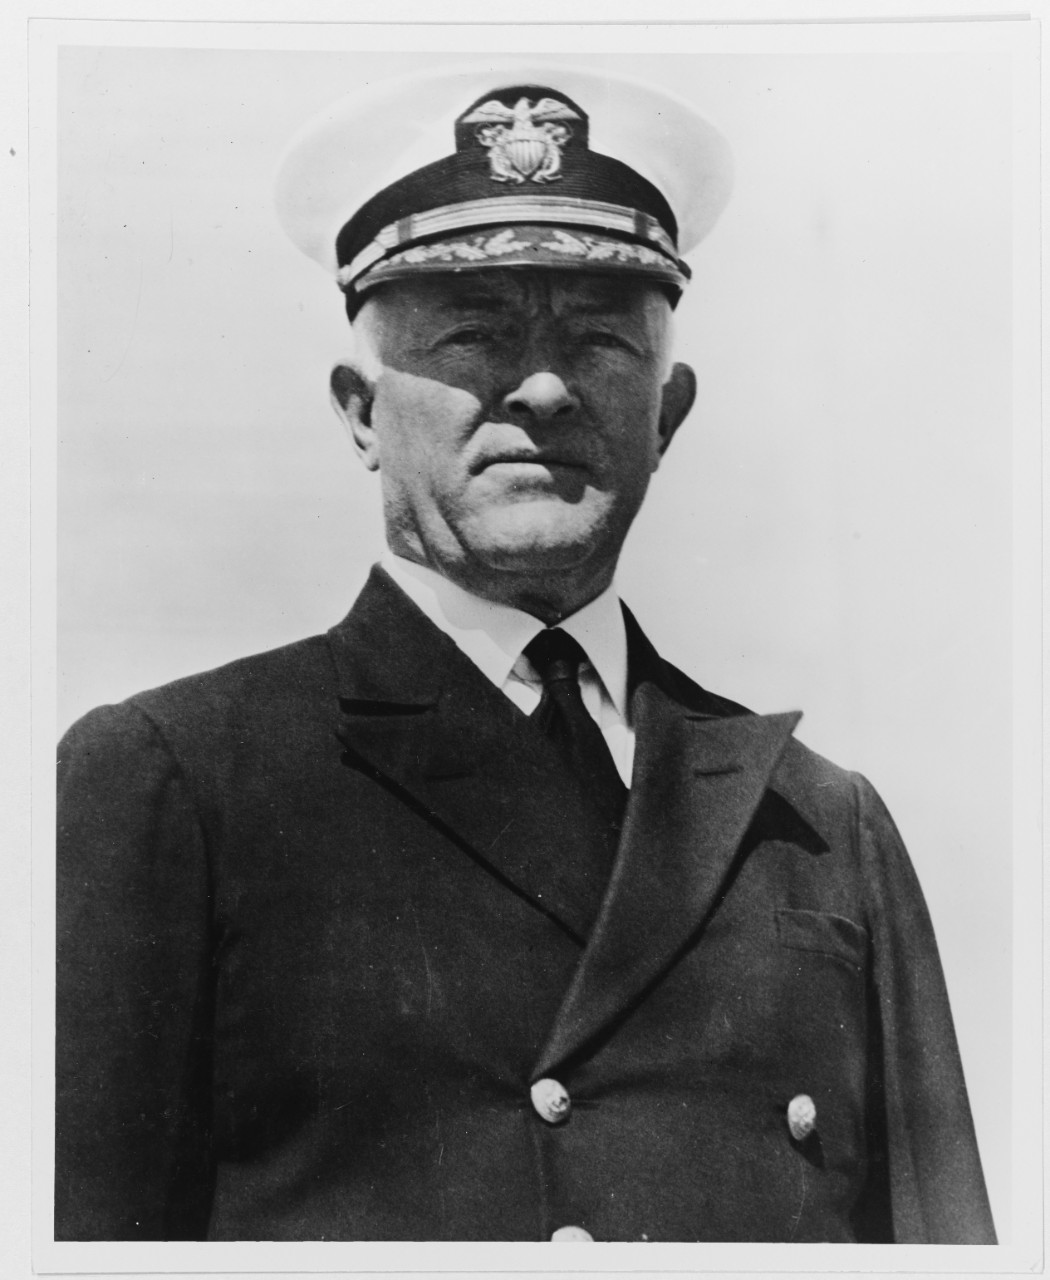 Rear Admiral Arthur P. Fairfield, USN